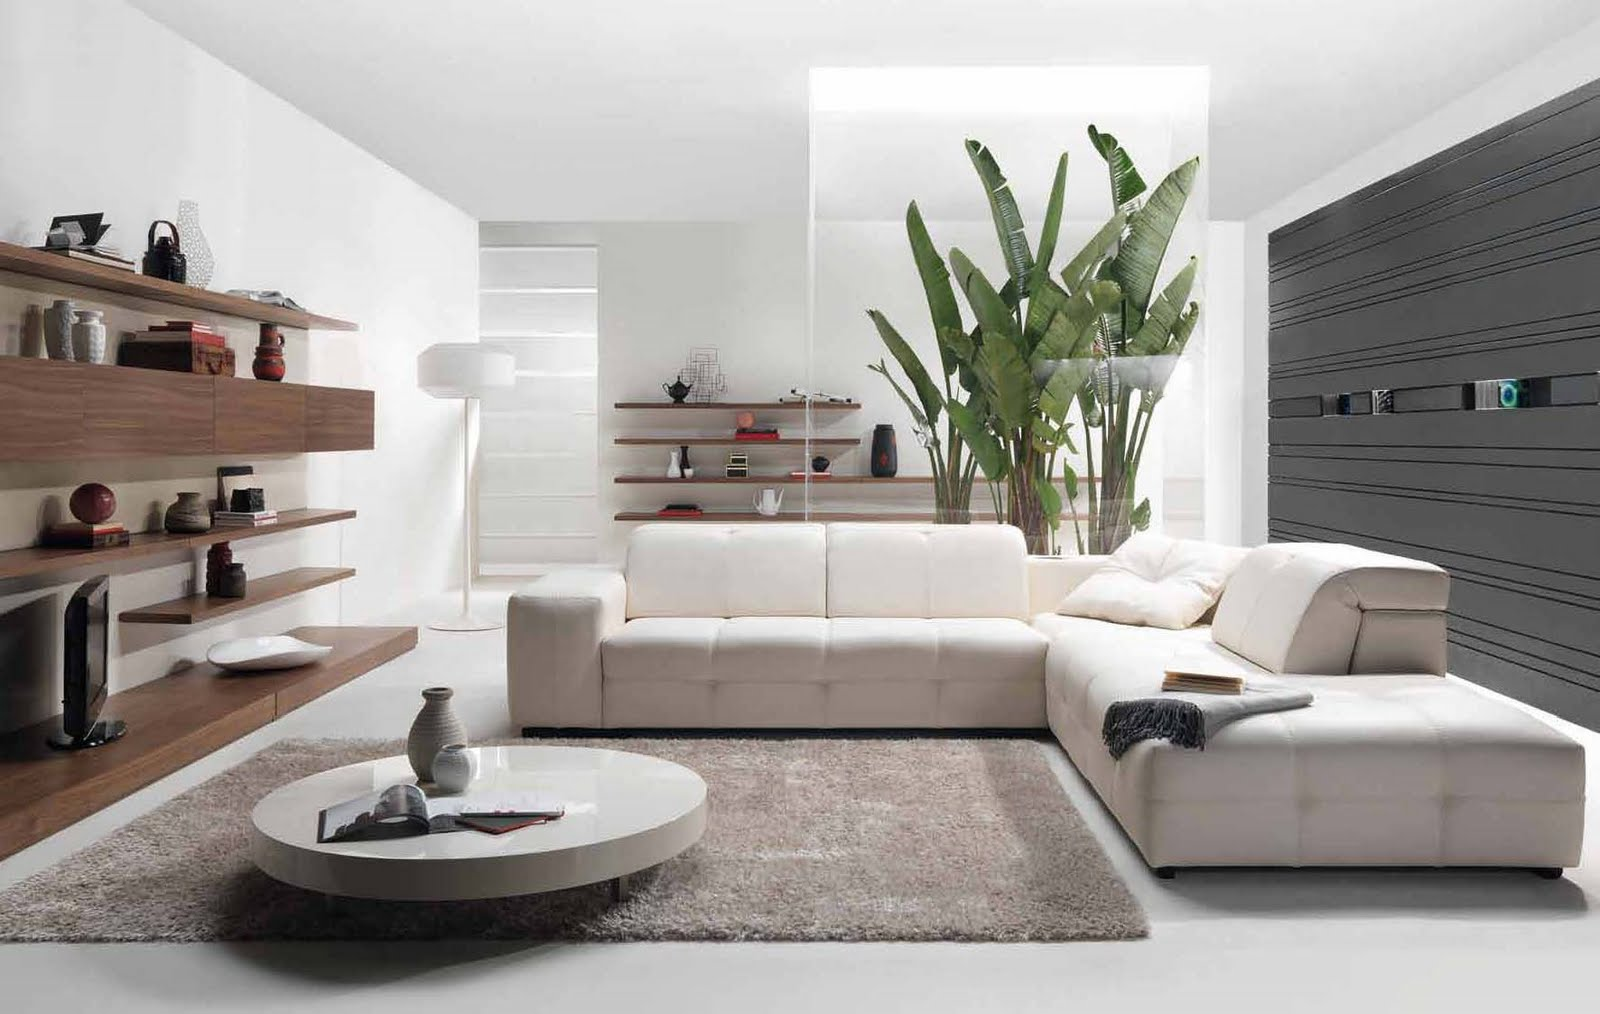 Future house design modern living room interior design for House interior living room